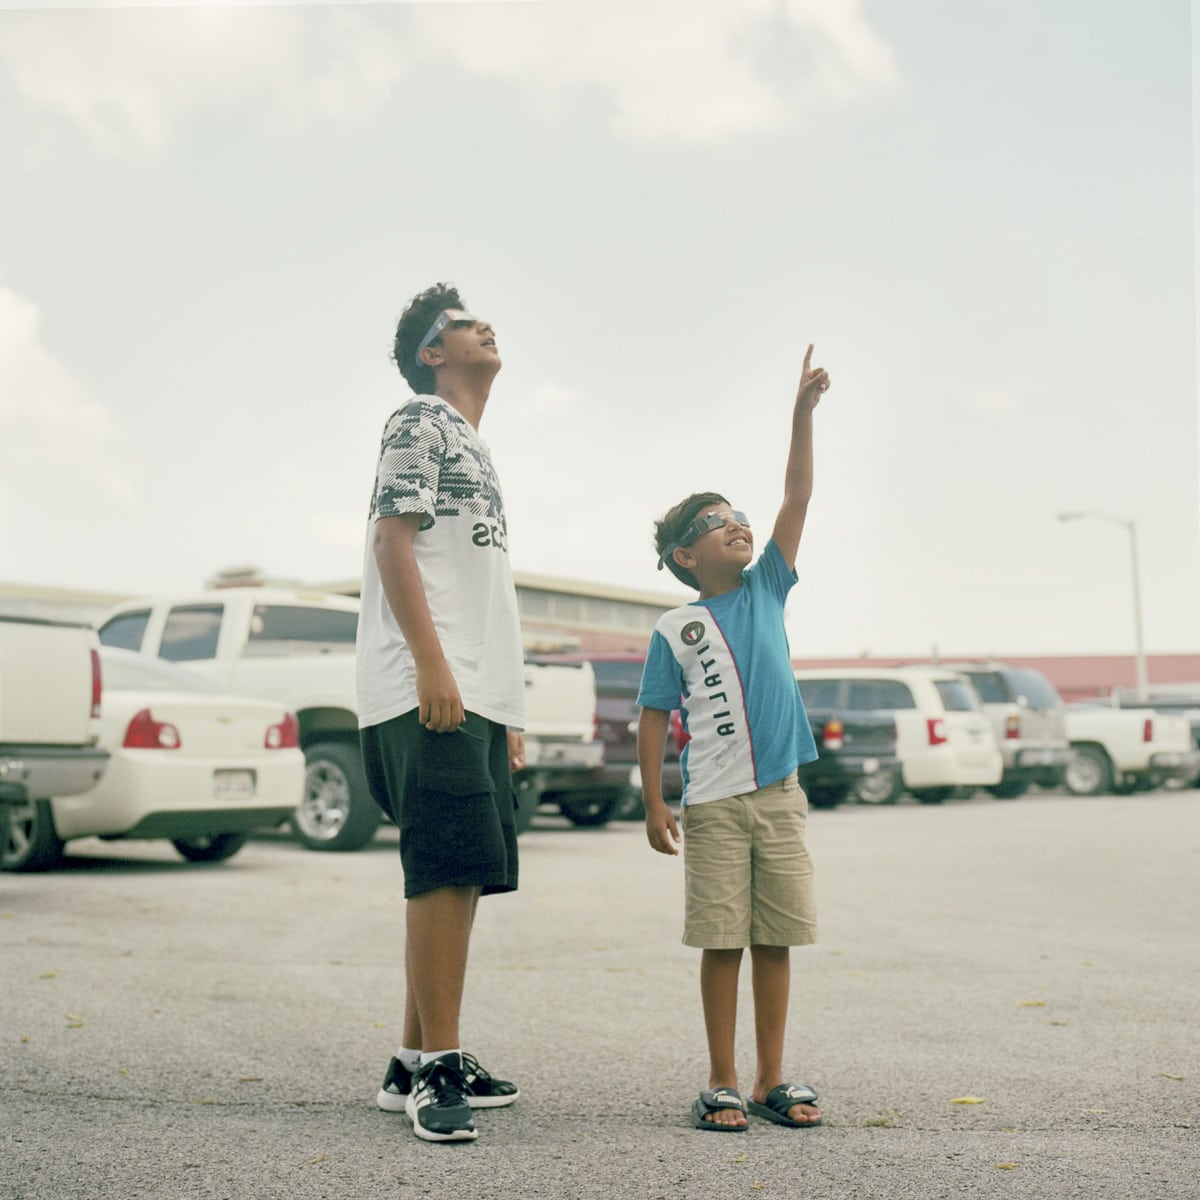 An analog portrait of two brothers watching the event in Carbondale, Illinois